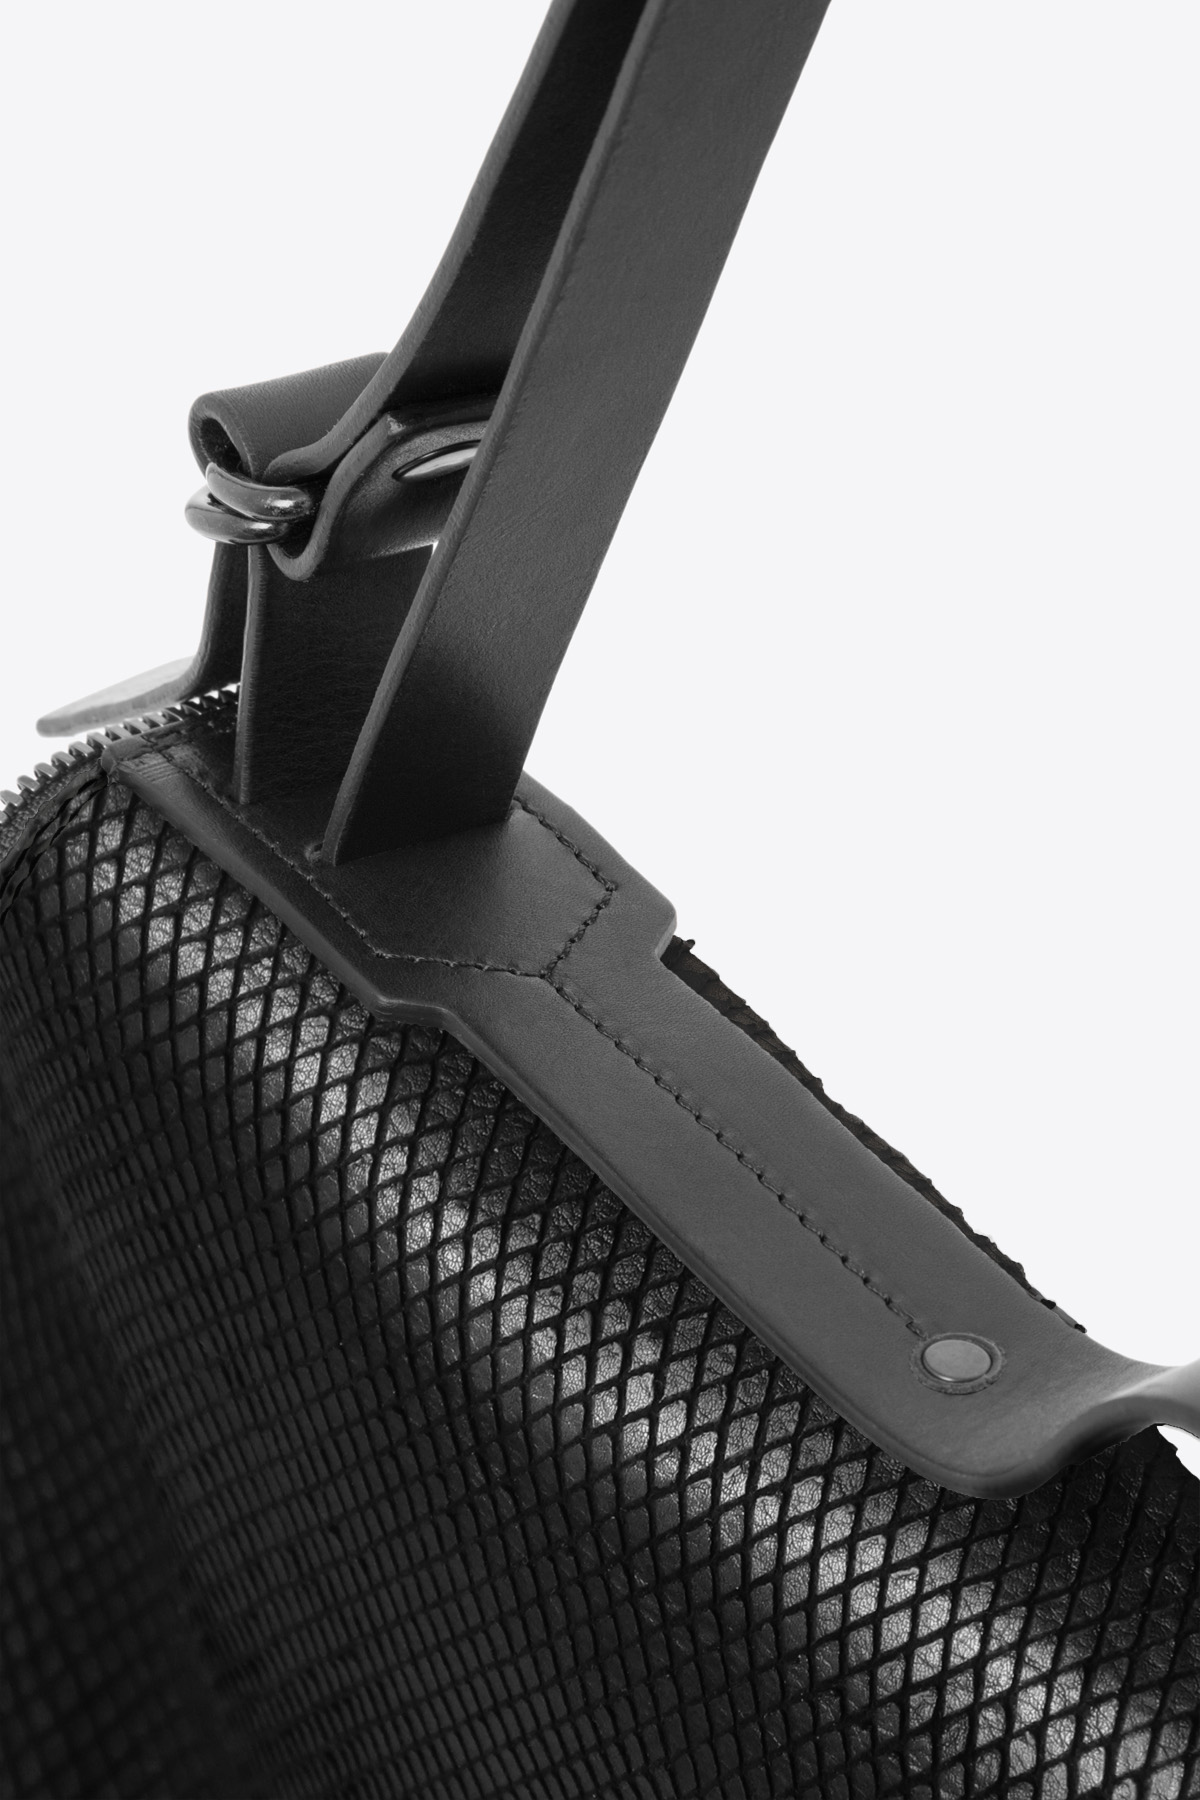 dclr008s-messenger-a23-backsnakeblack-detail